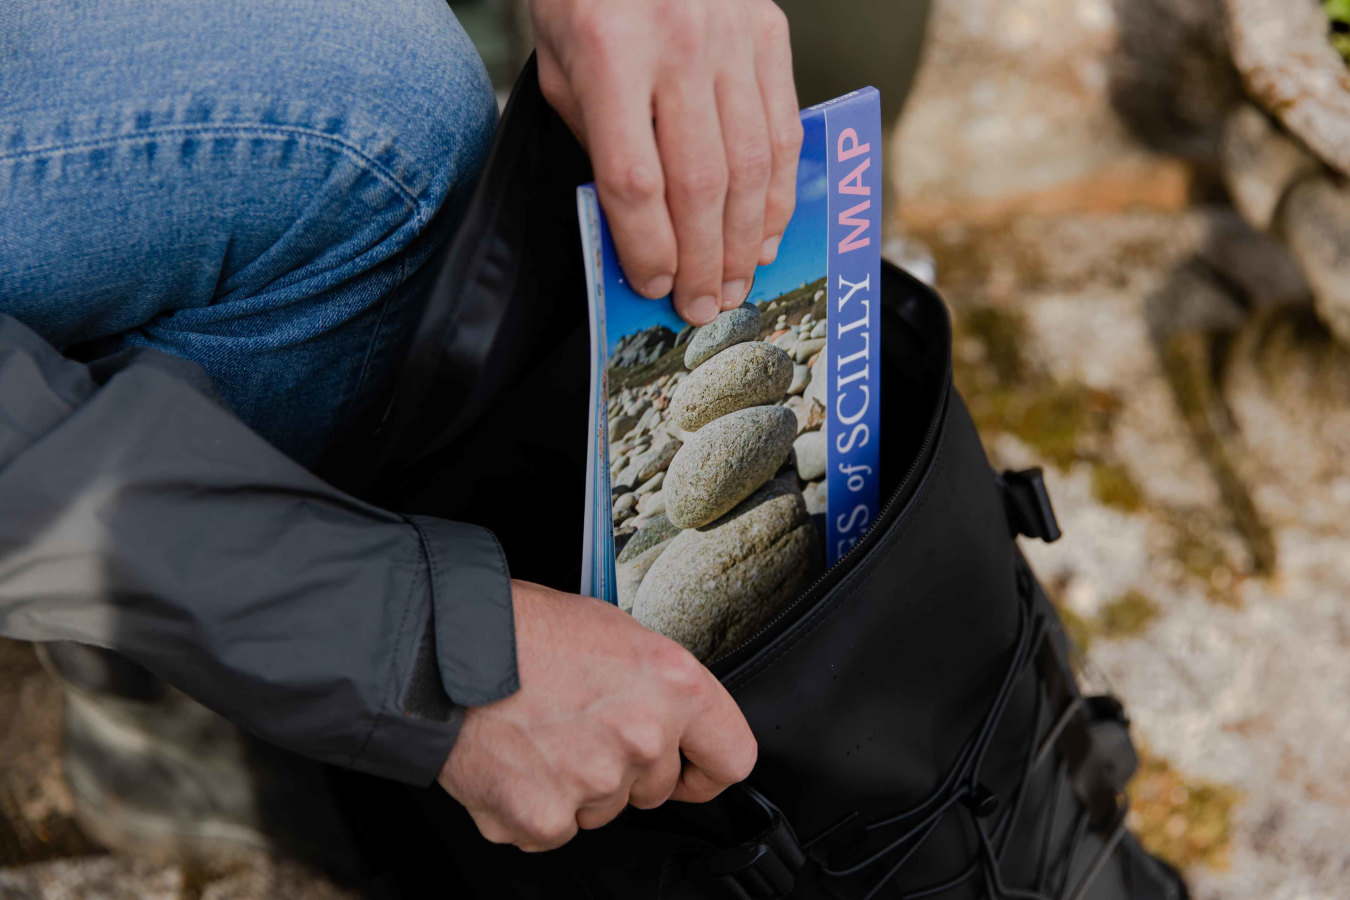 Hands putting Friendly Guides Book into backpack